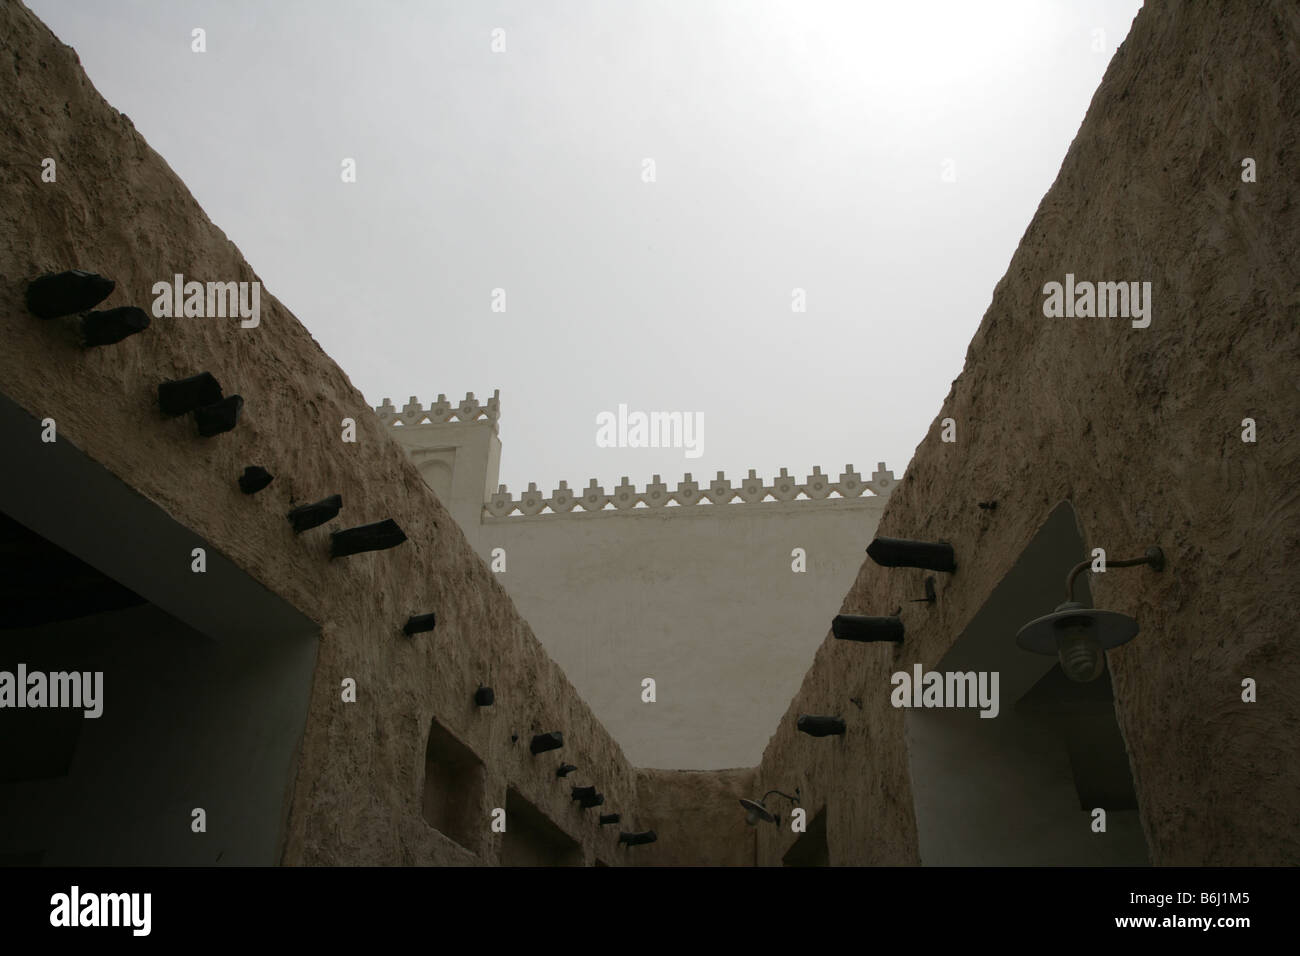 Traditional buildings with protruding 'shandal' beams in Doha, Qatar, Middle East - Stock Image